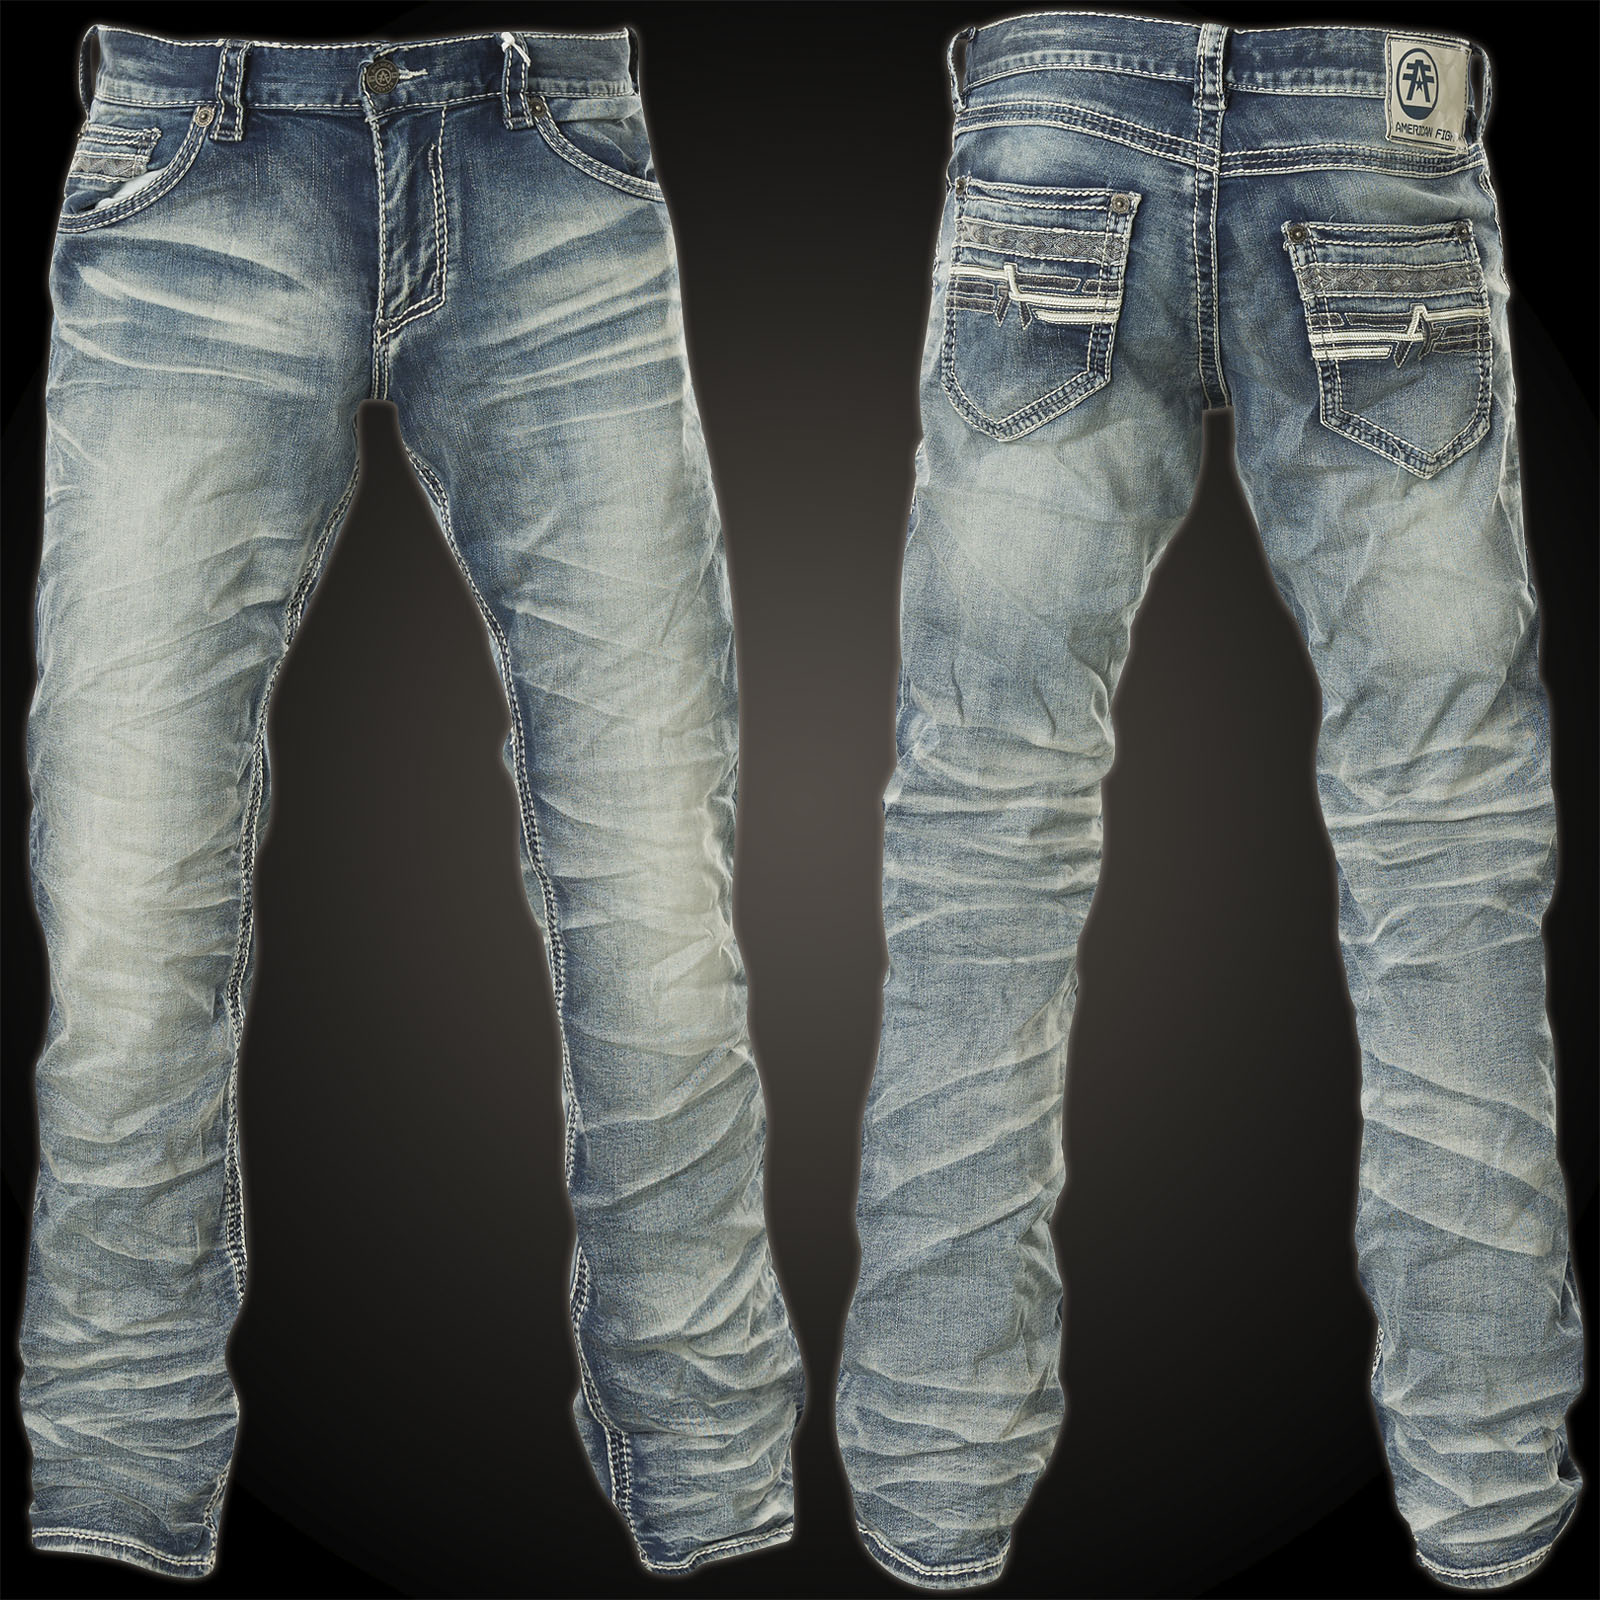 American Fighter Jeans Legend Doyle With Many Decorative Seams